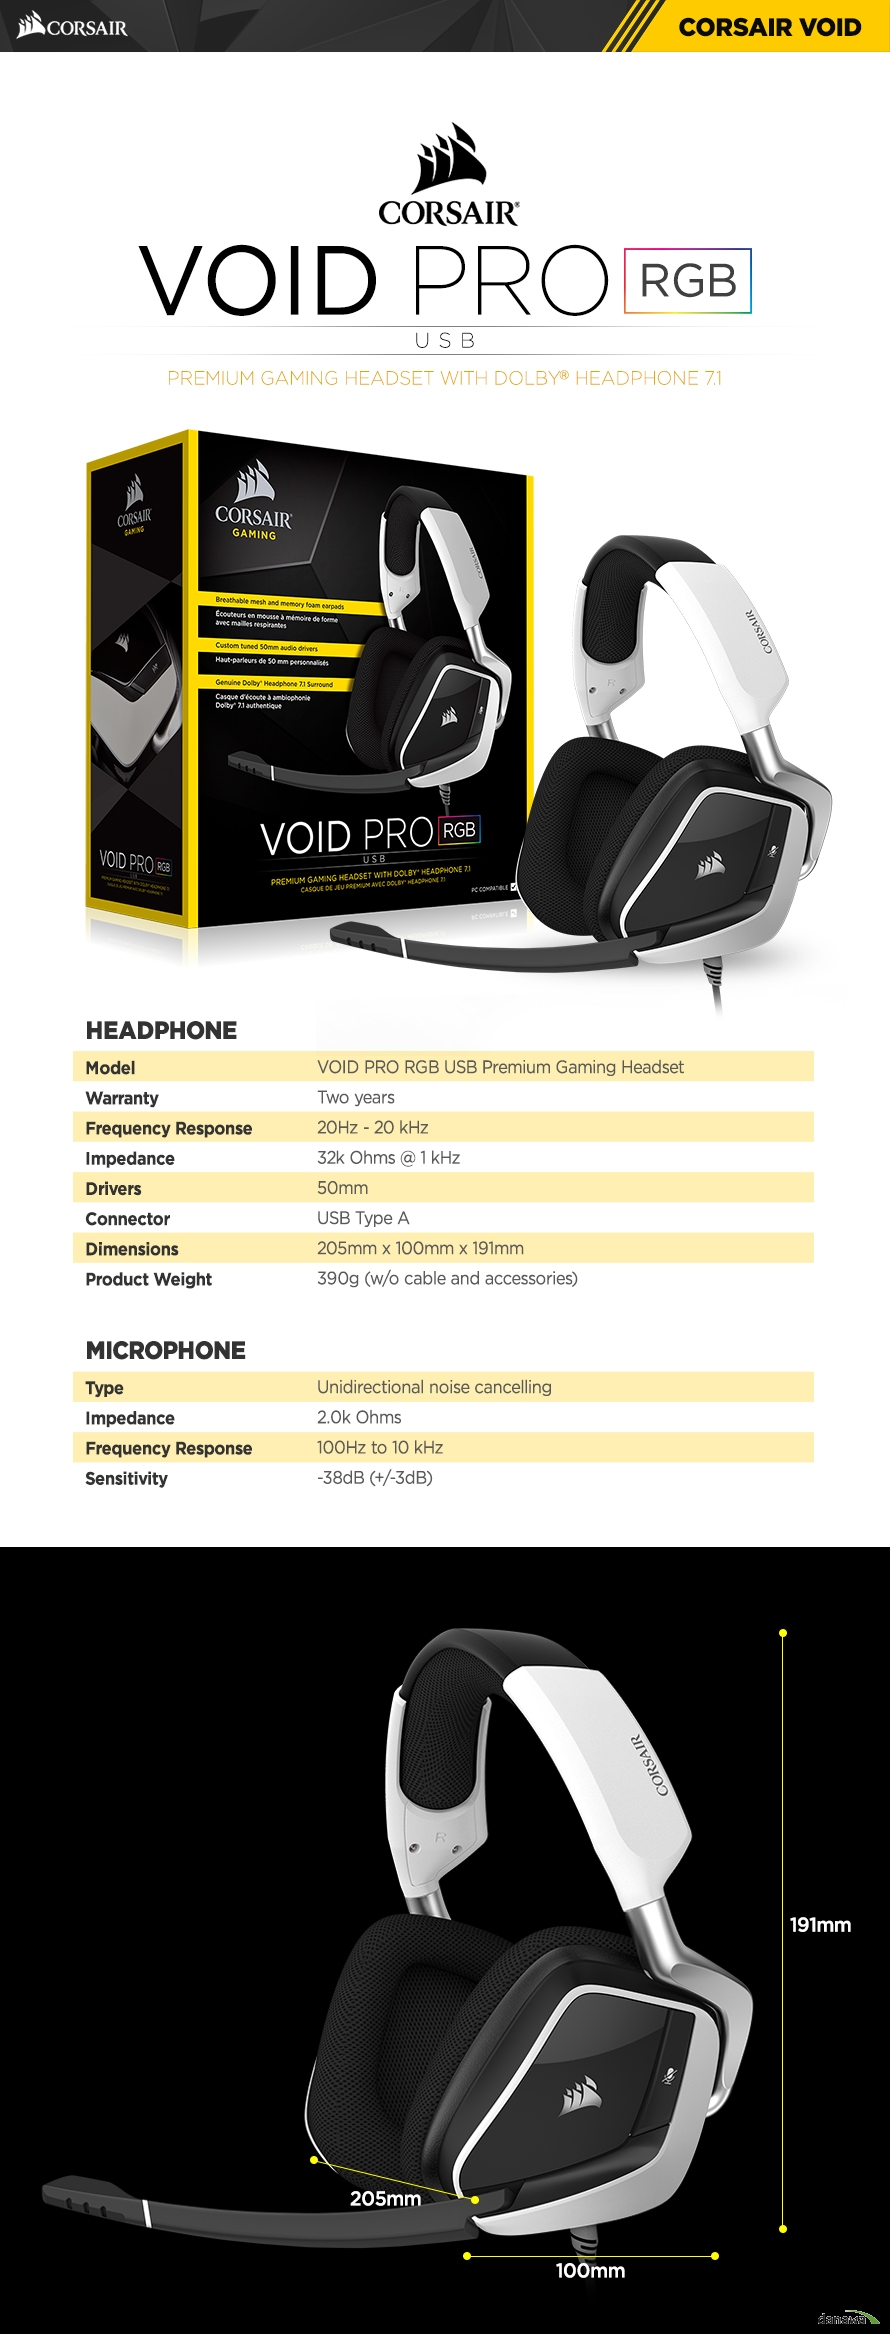 HEADPHONEModelVOID PRO RGB USB Premium Gaming HeadsetWarrantyTwo yearsFrequency Response20Hz - 20 kHzImpedance32k Ohms @ 1 kHzDrivers50mmConnectorUSB Type ADimensions205mm x 100mm x 191mmProduct Weight390g (w/o cable and accessories)MICROPHONETypeUnidirectional noise cancellingImpedance2.0k OhmsFrequency Response100Hz to 10 kHzSensitivity-38dB (+/-3dB)